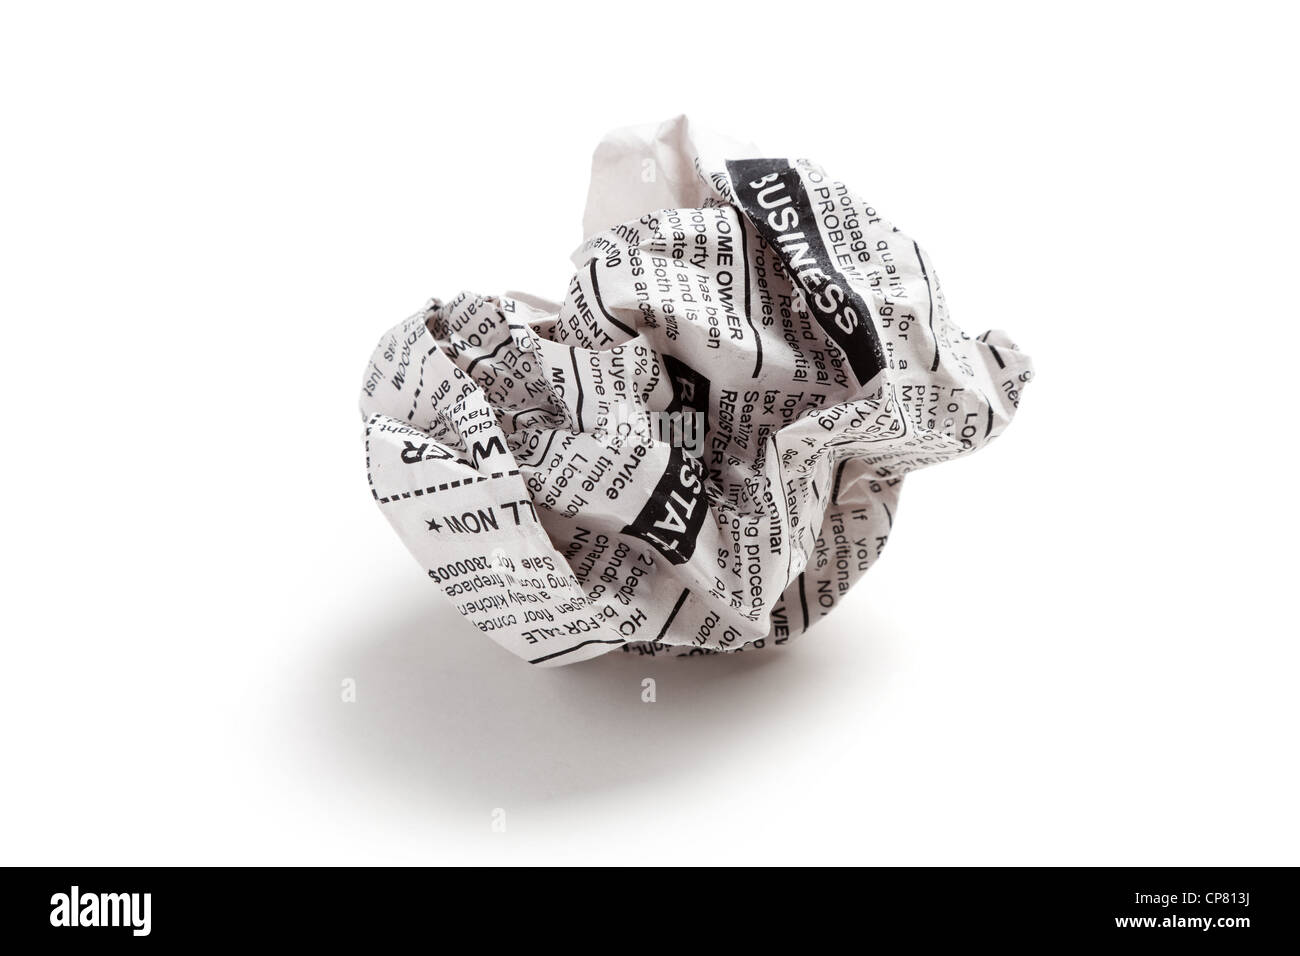 Newspaper ball, business concept. - Stock Image